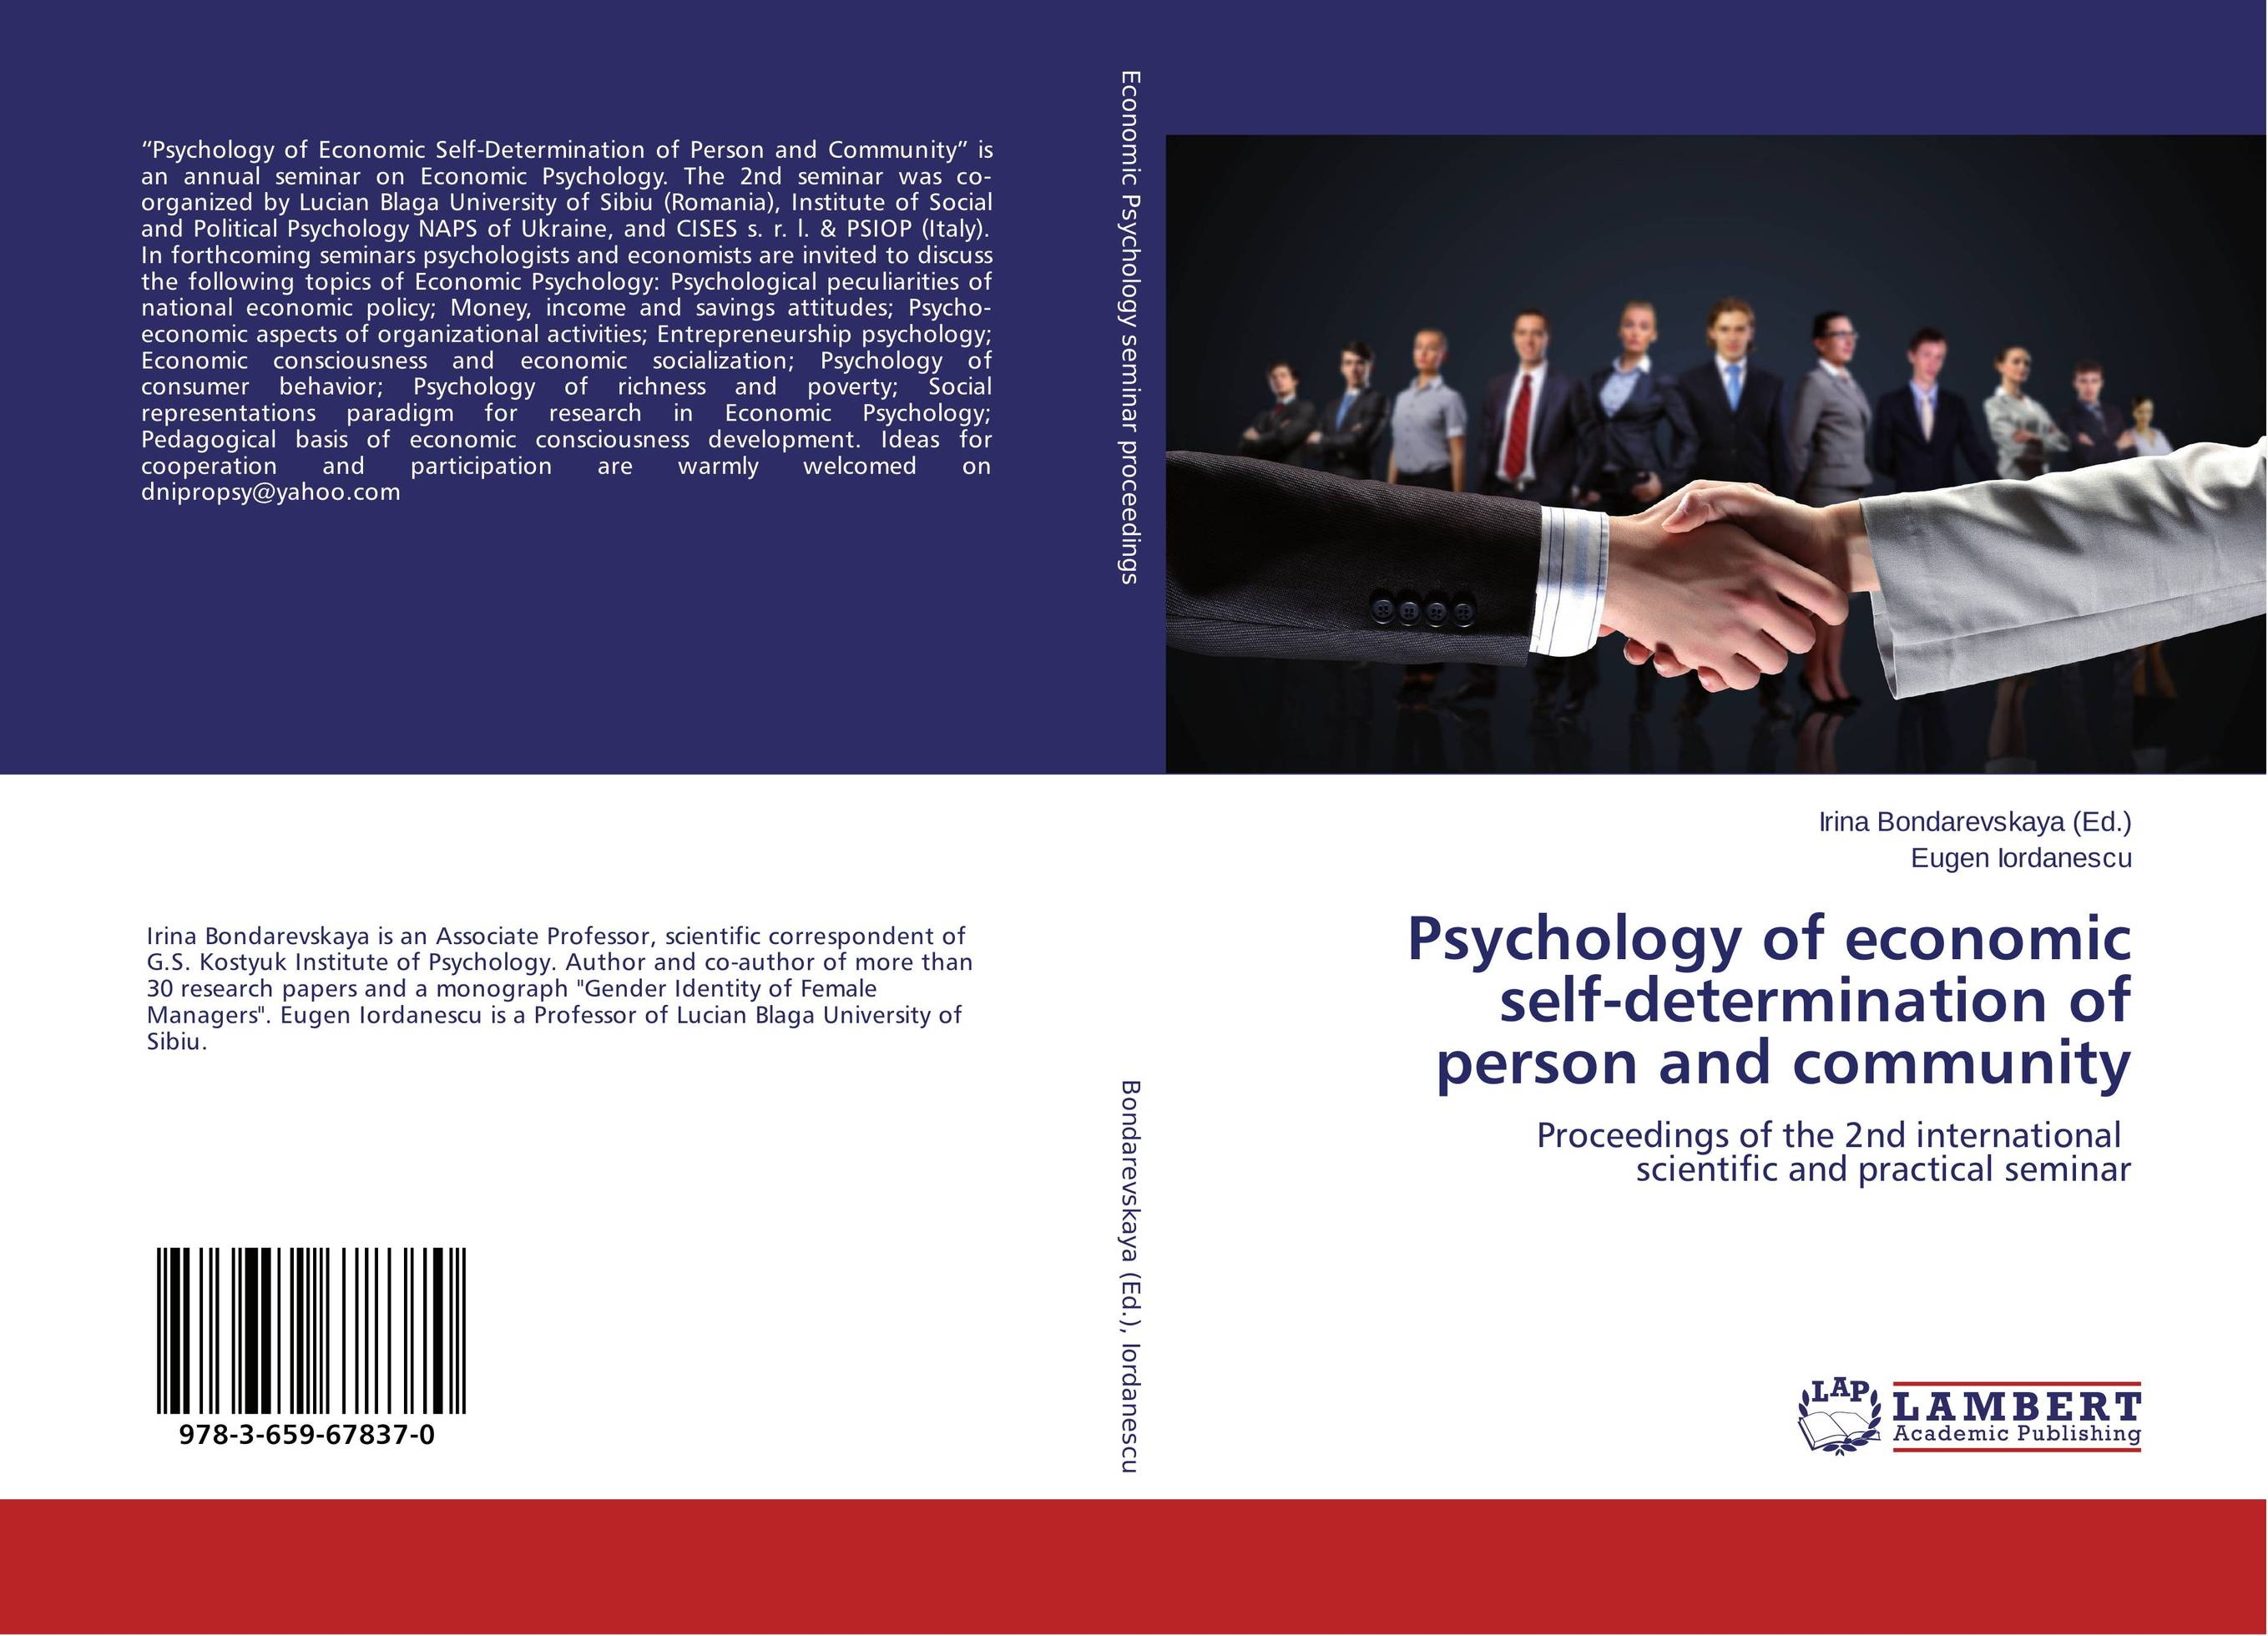 Psychology of economic self-determination of person and community